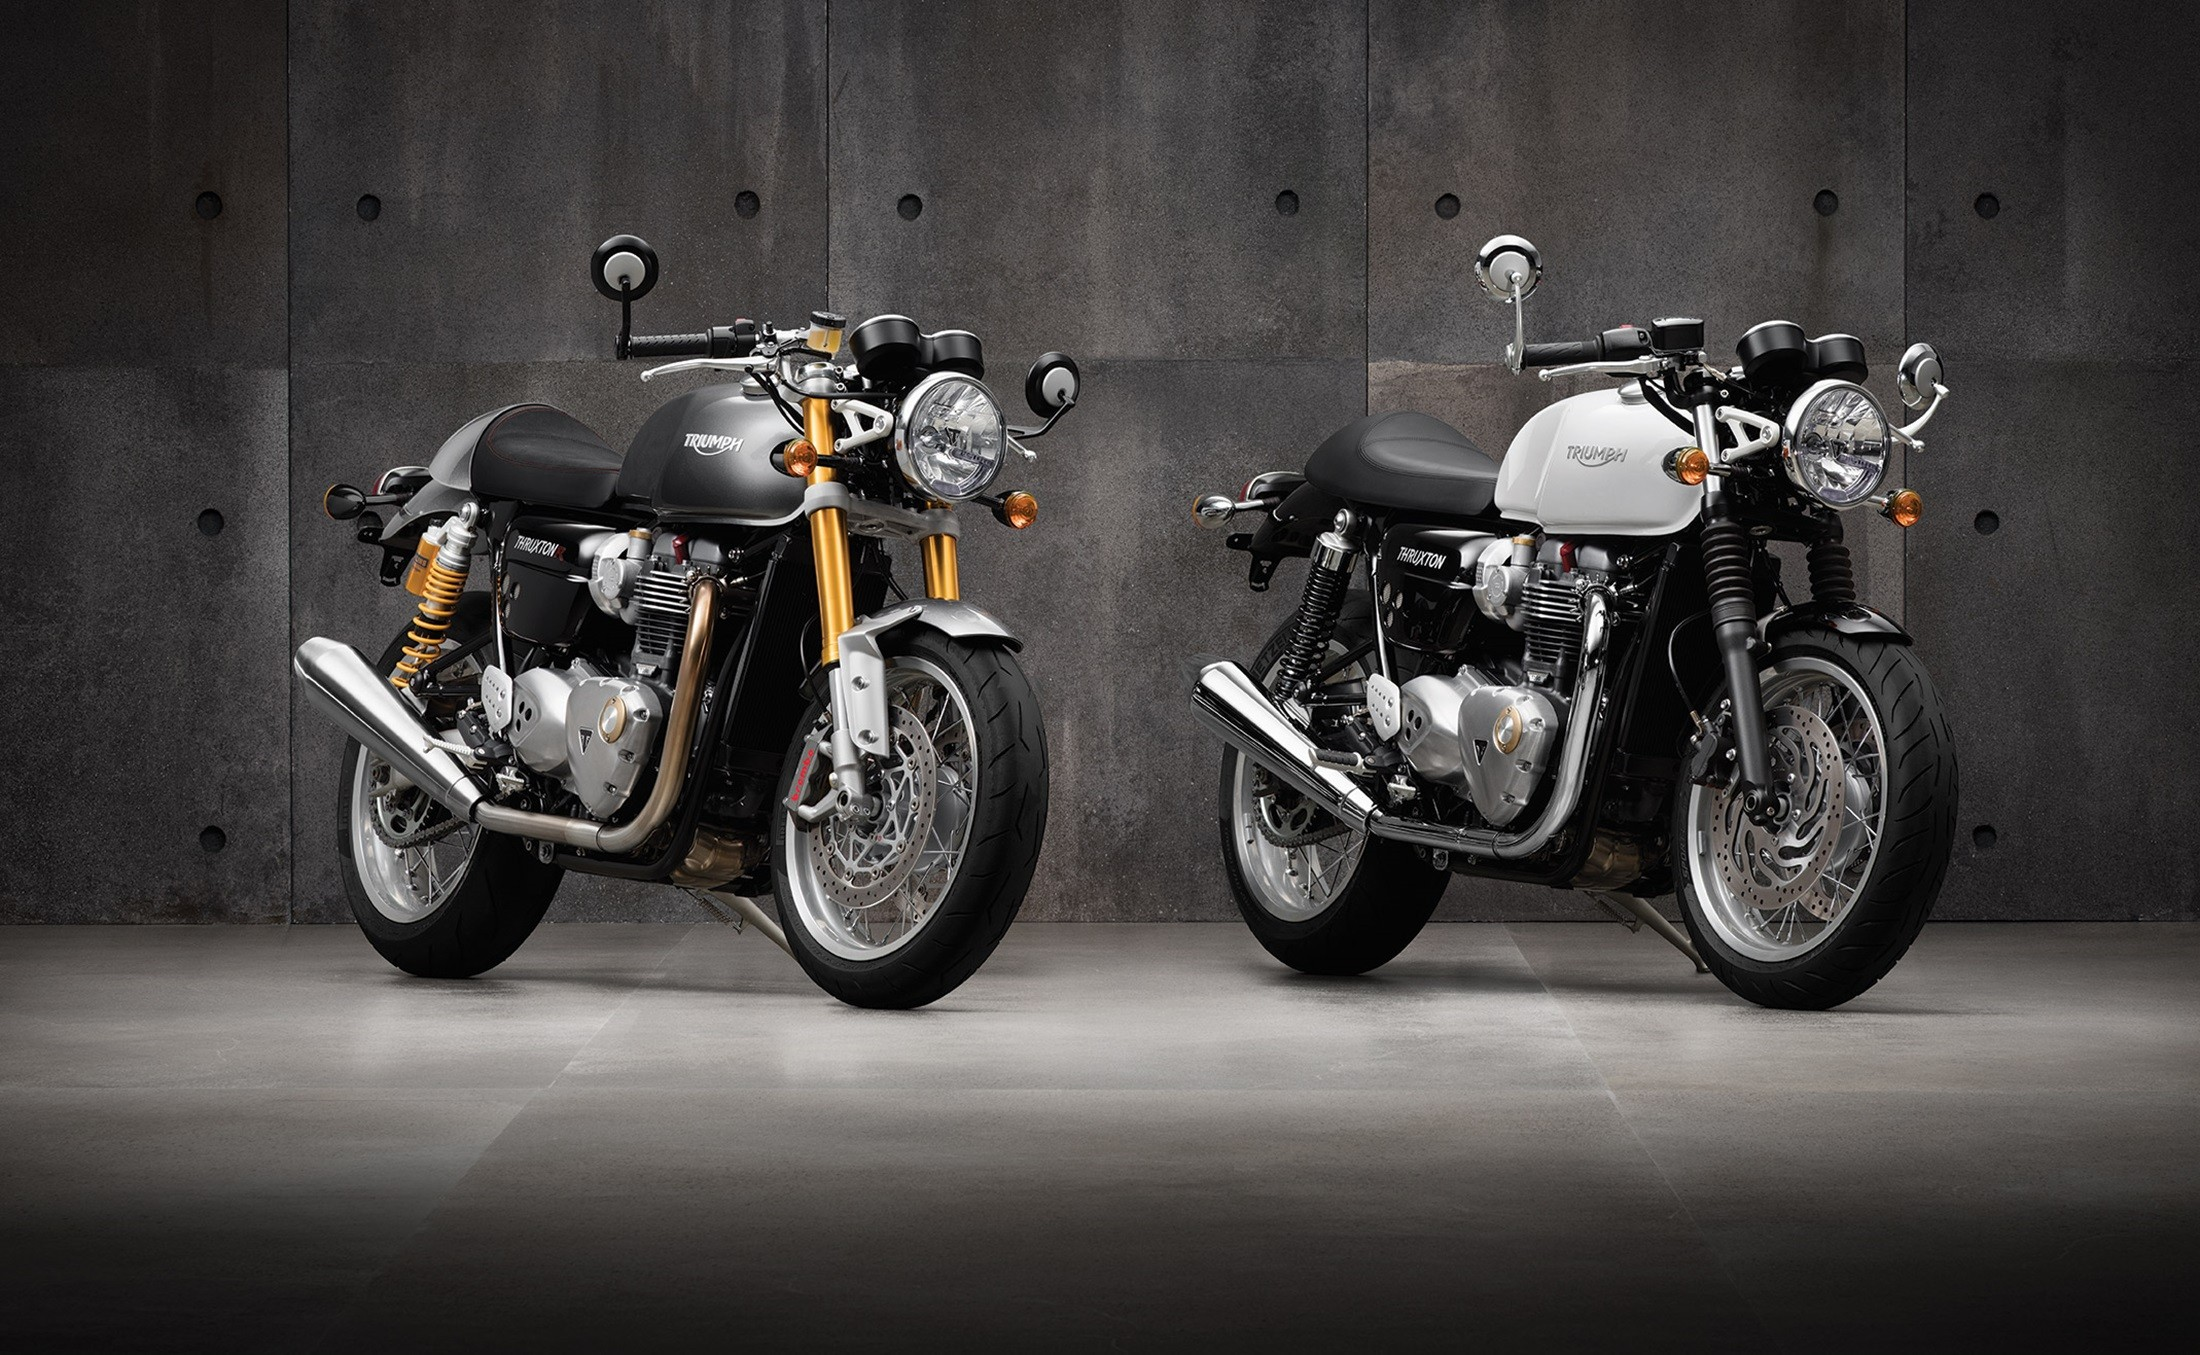 2016 Triumph Thruxton And Thruxton R Shown Looking Like